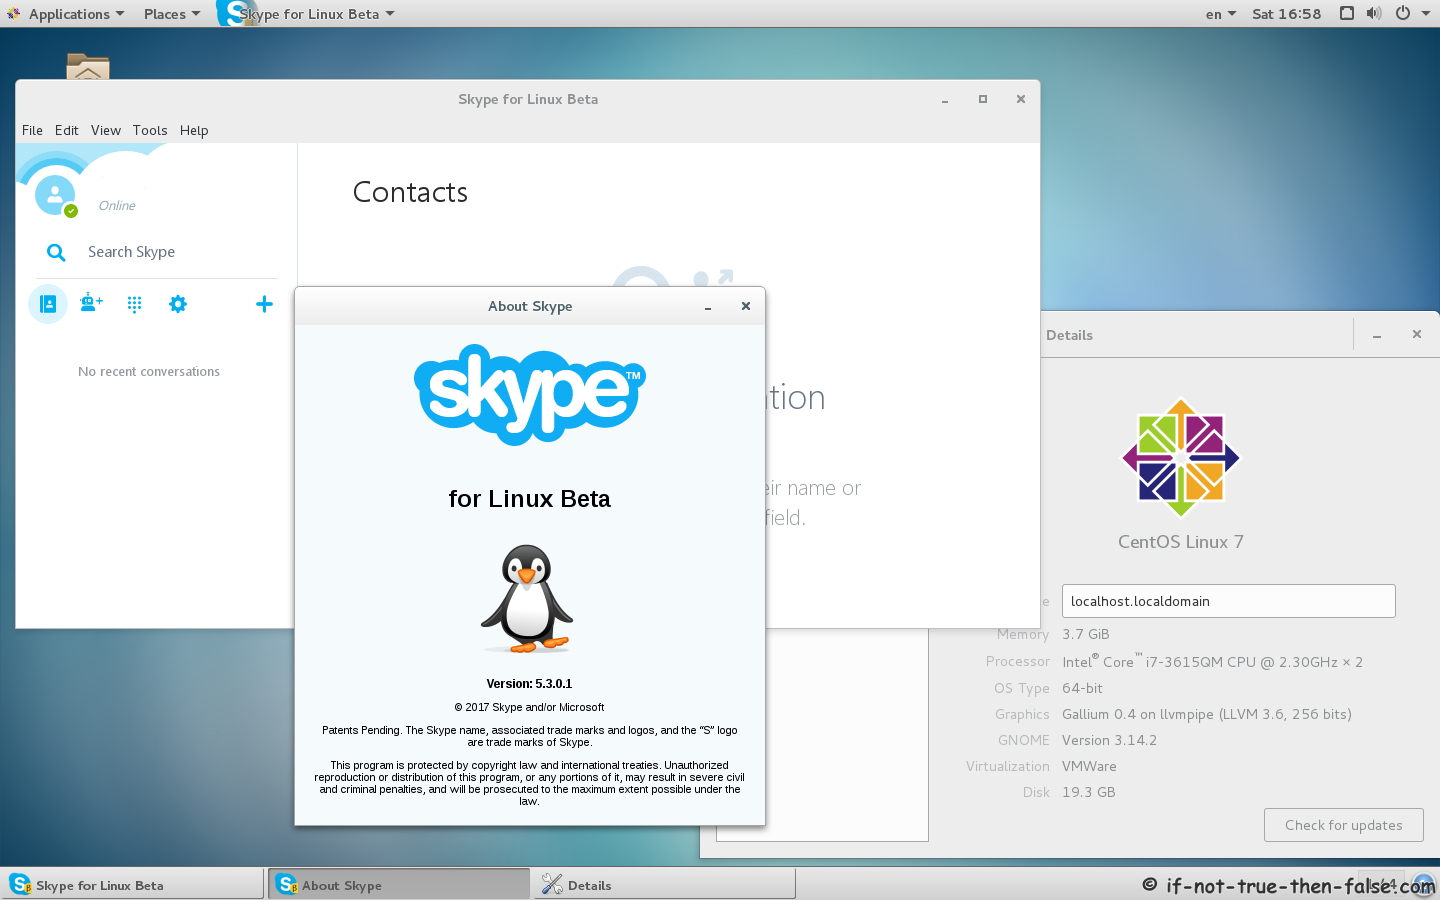 Skype Beta 5.3 Running on CentOS 7